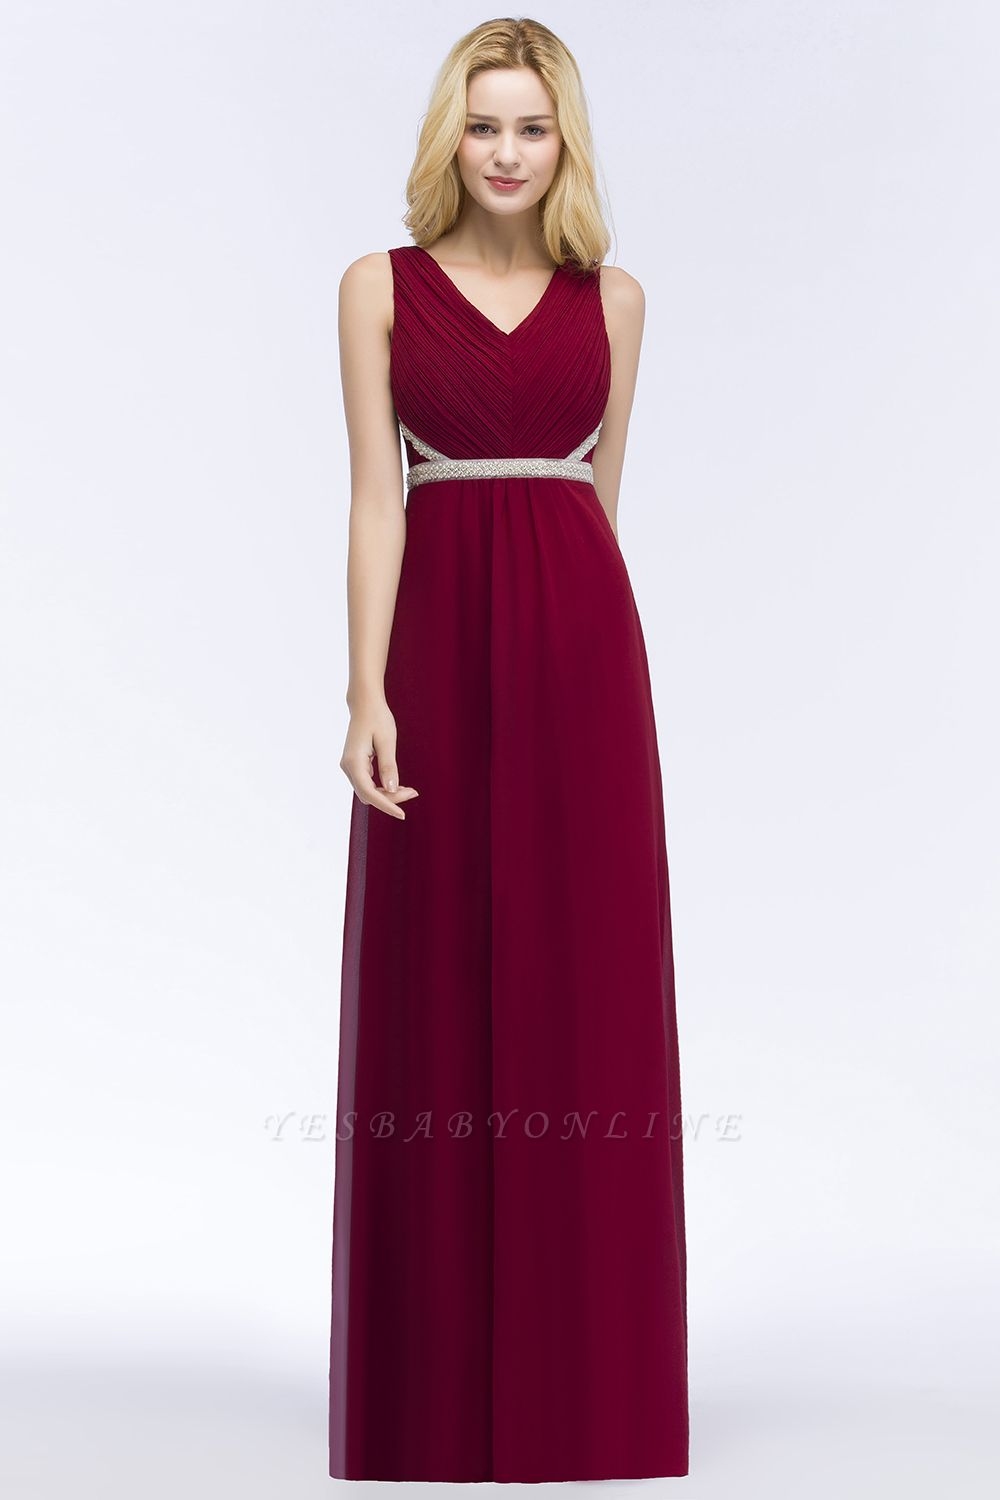 A-line Long Sleeveless V-neck Ruffled Chiffon Bridesmaid Dresses with Beading Sash